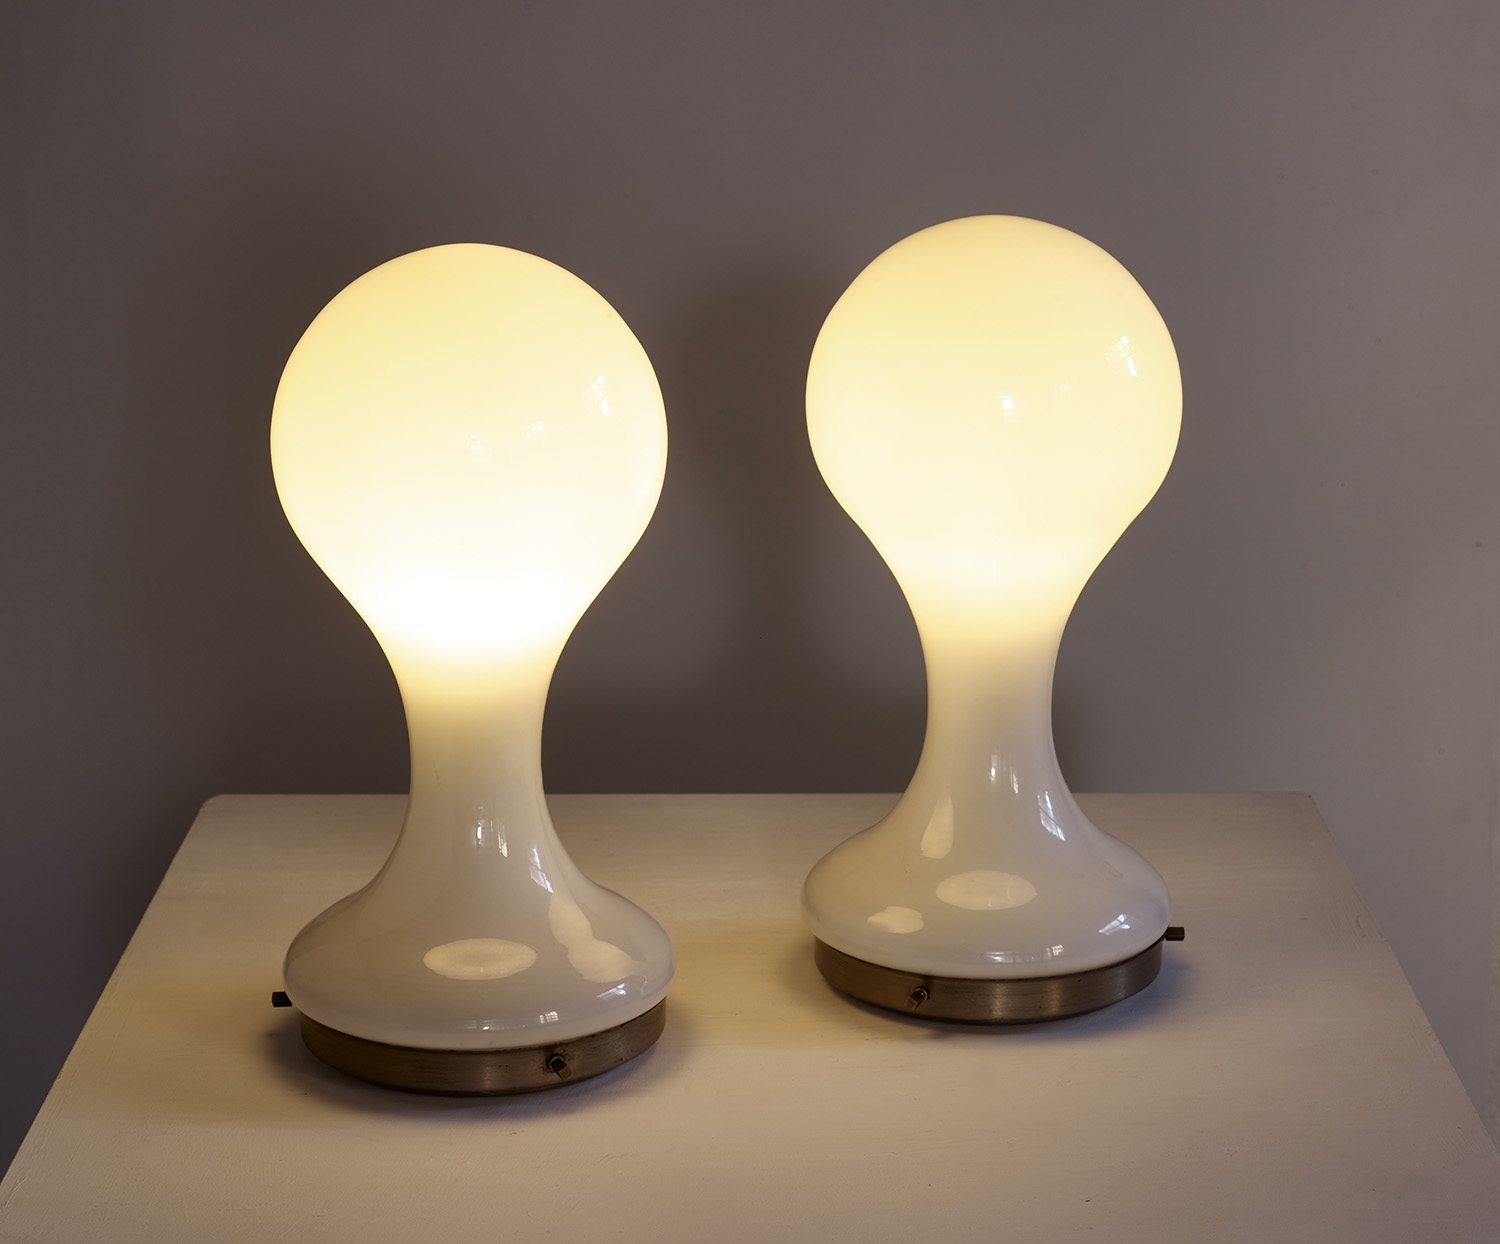 pair-of-table-lamps-by-mazzega-1960-image-01